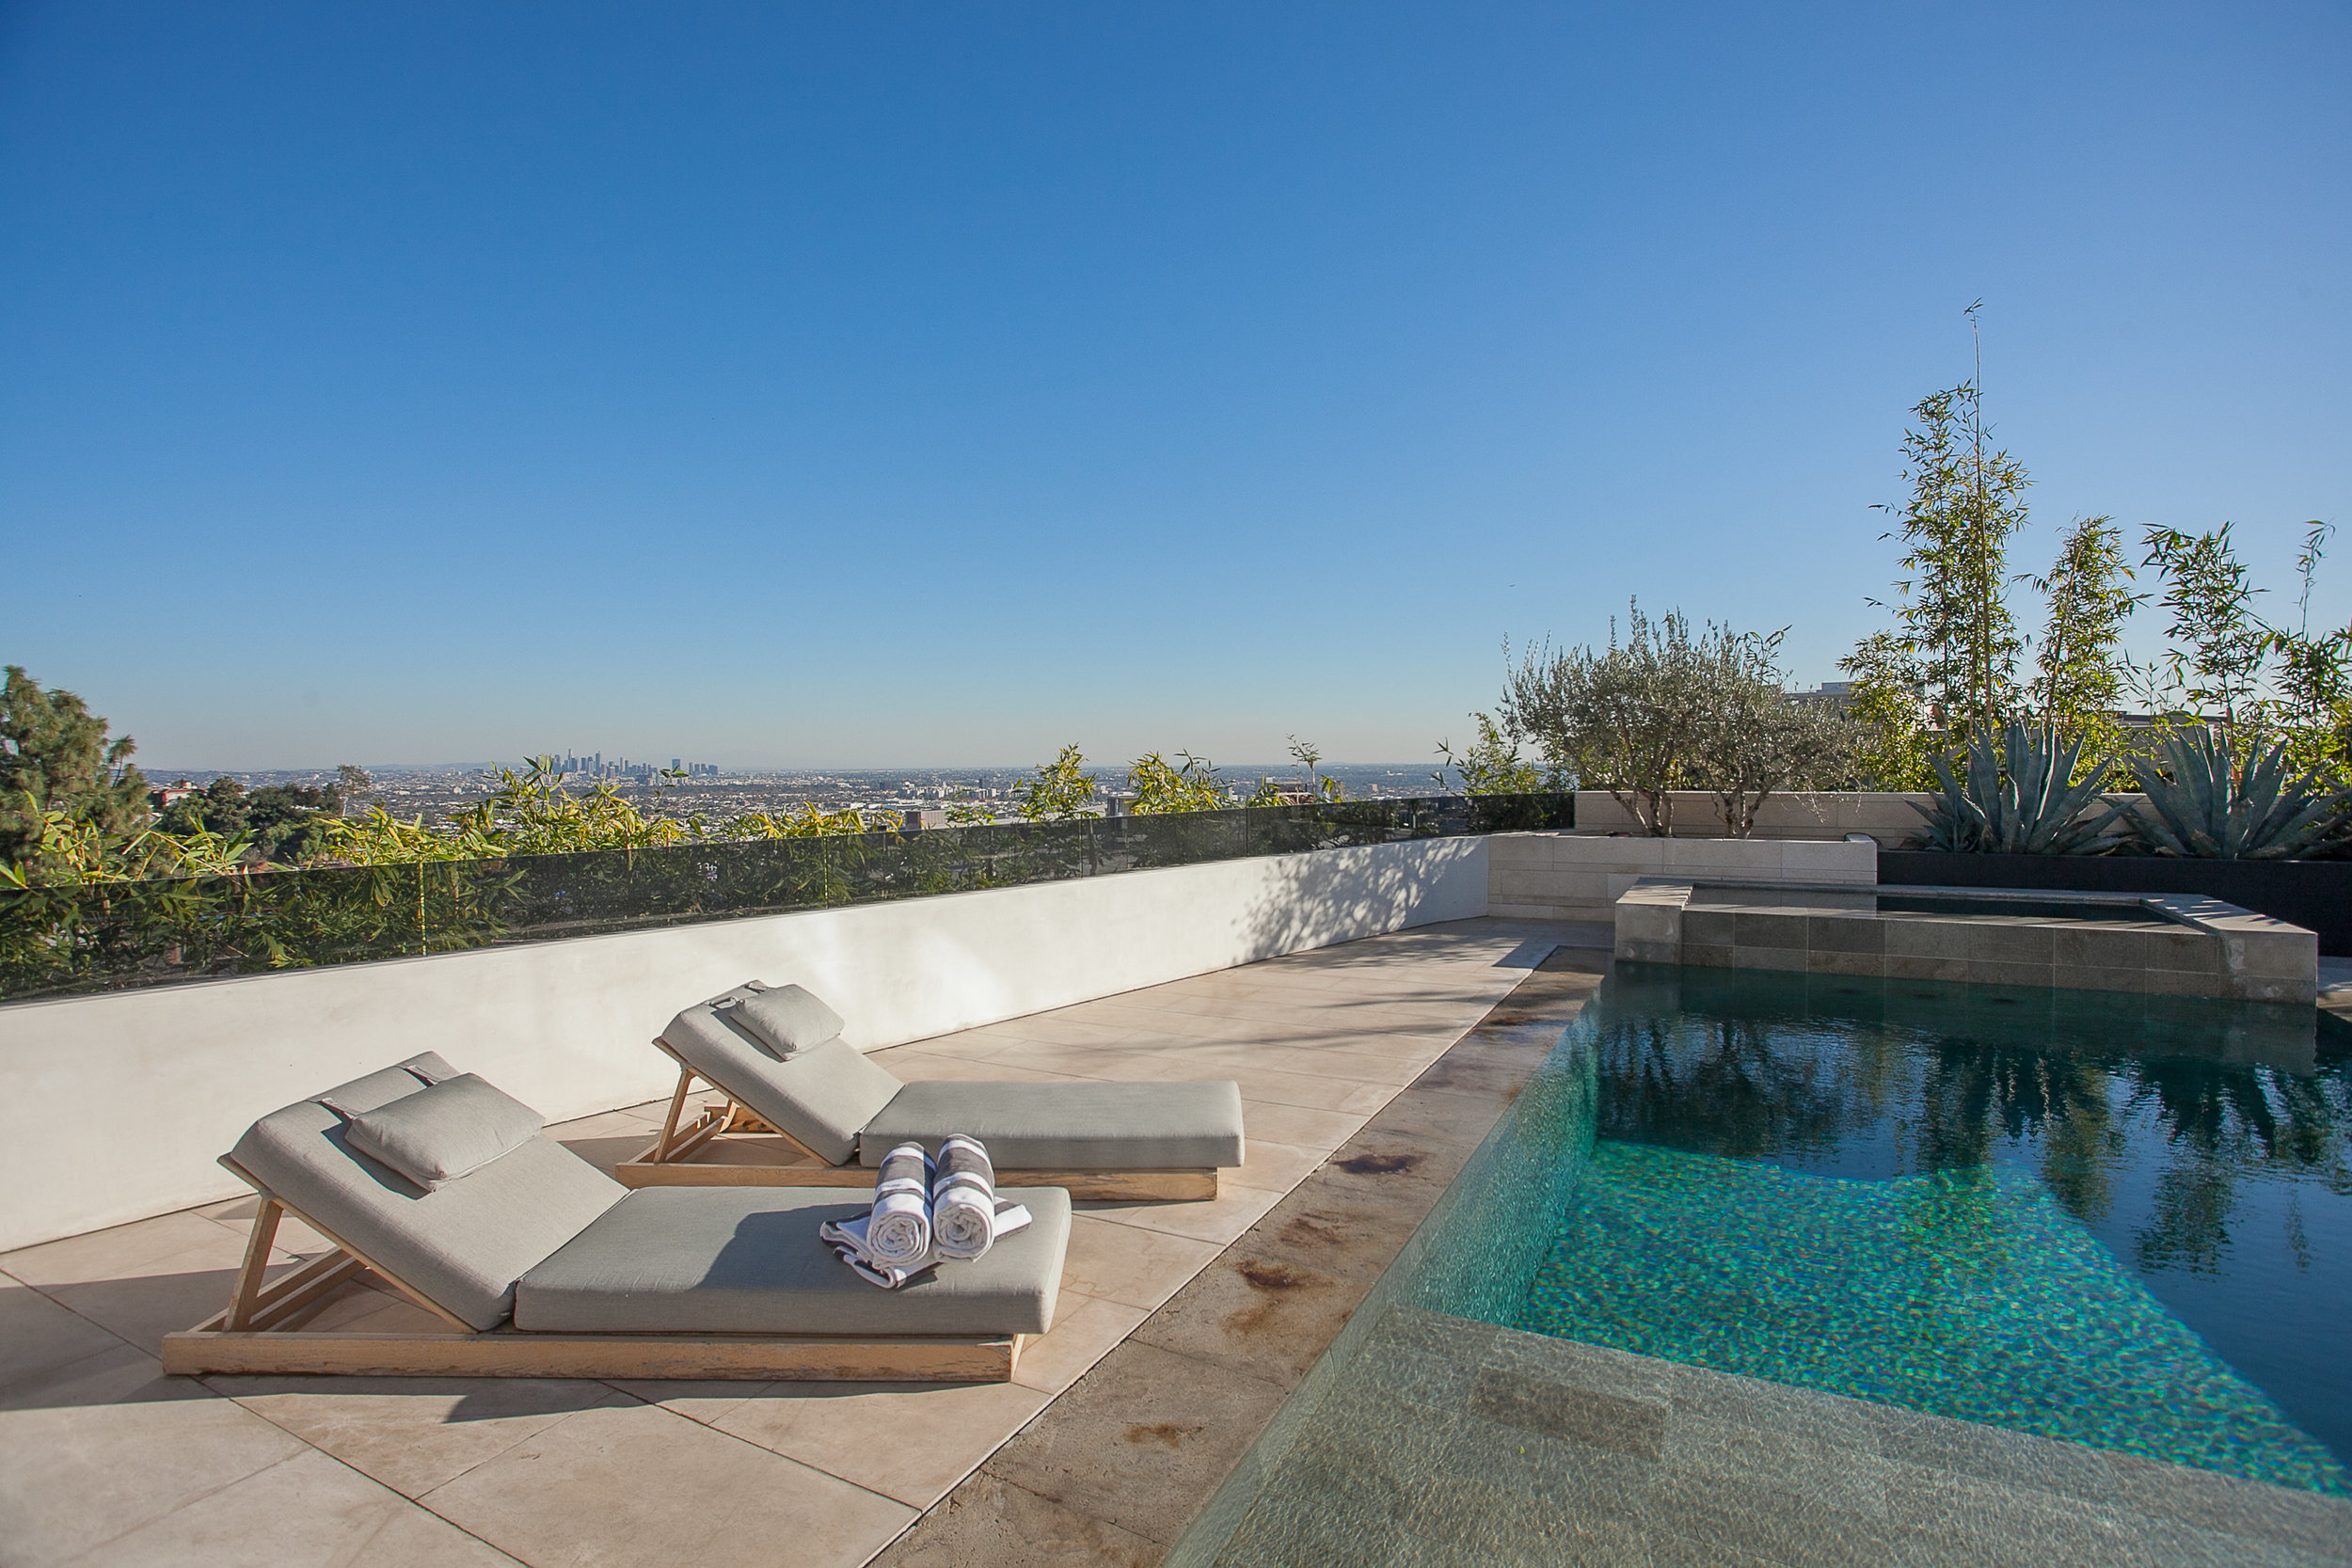 9393 Sierra Mar Dr, Los Angeles_HI RES-17.jpg